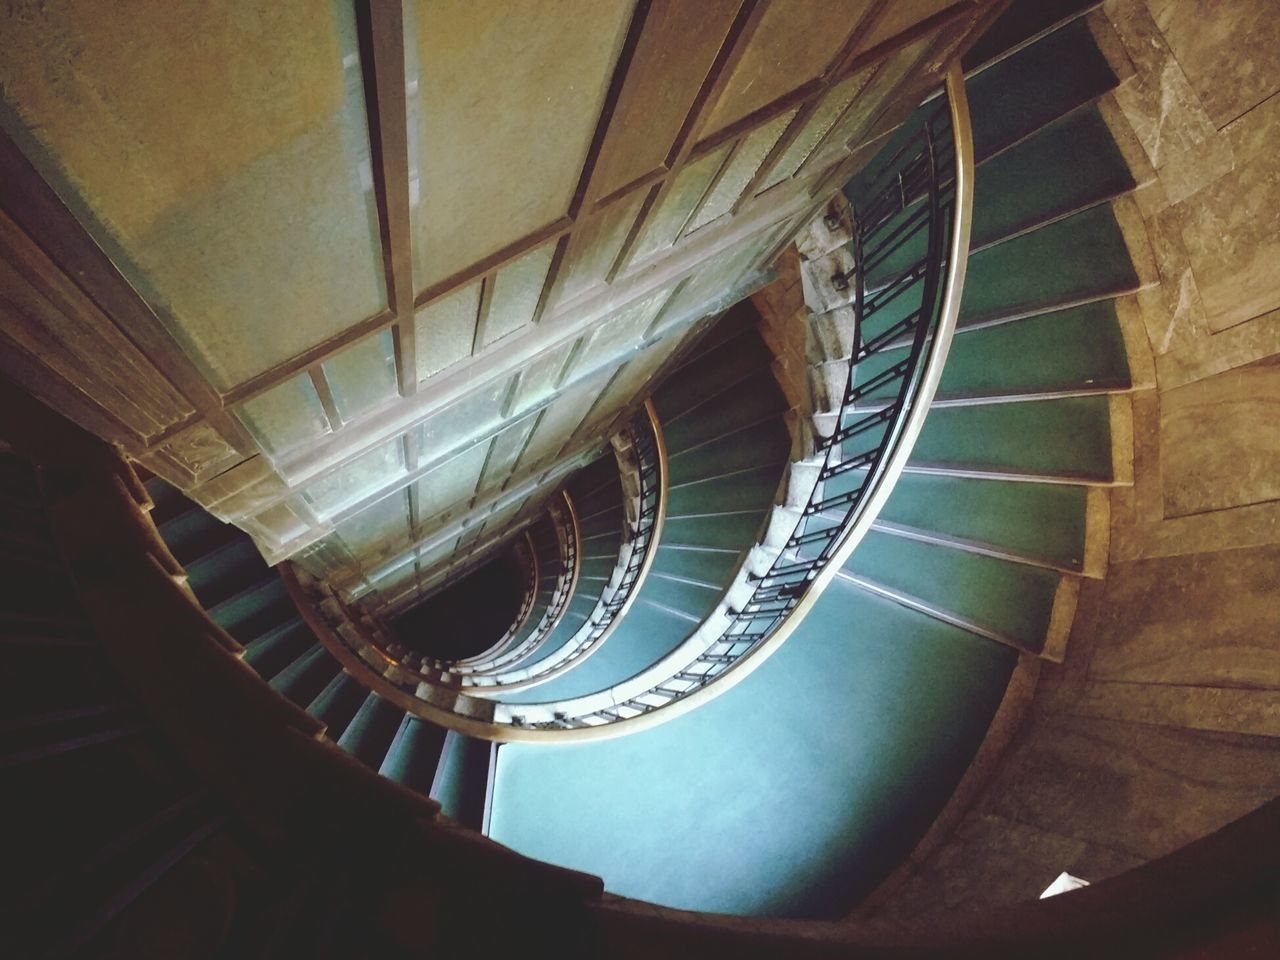 Staircase Railing Architecture Spiral Steps Spiral Staircase Steps And Staircases Luxury Built Structure Indoors  No People Close-up Day